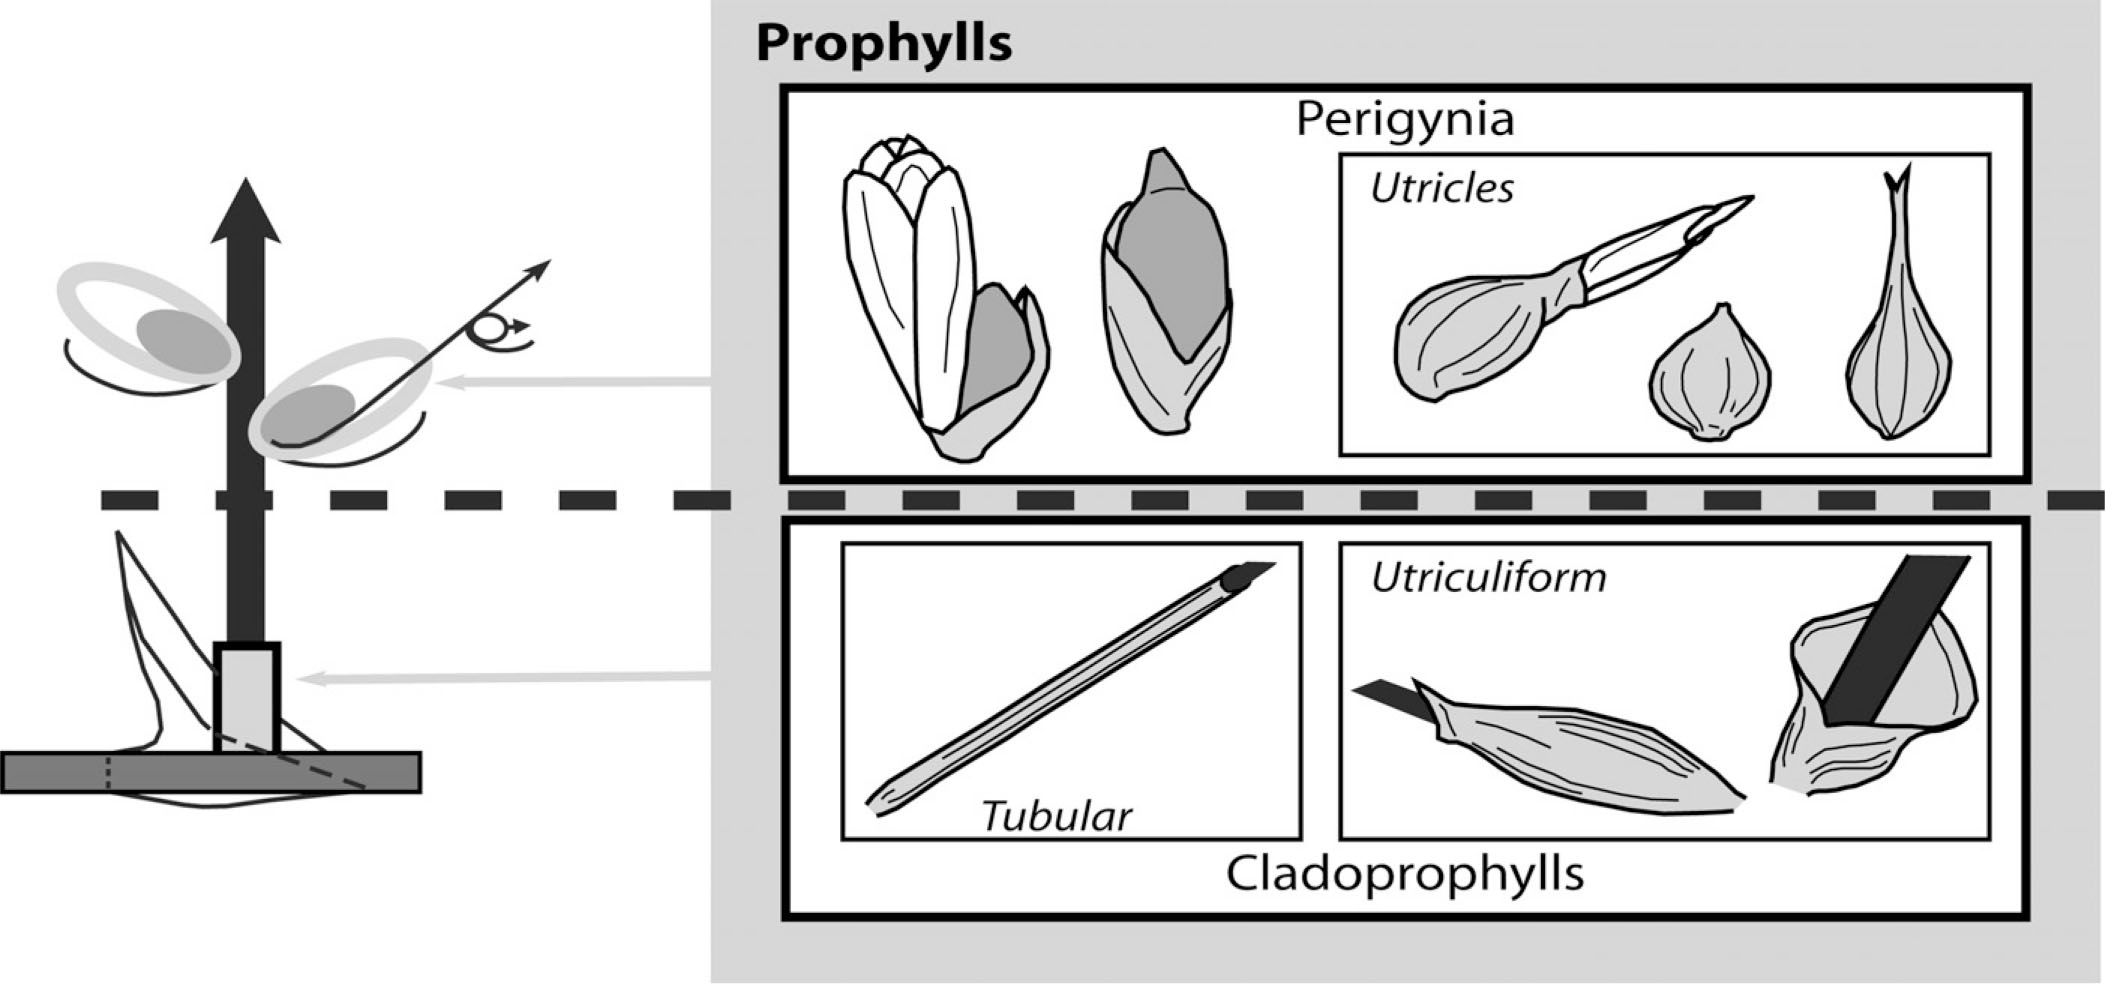 Clarification of the Use of the Terms Perigynium and Utricle in